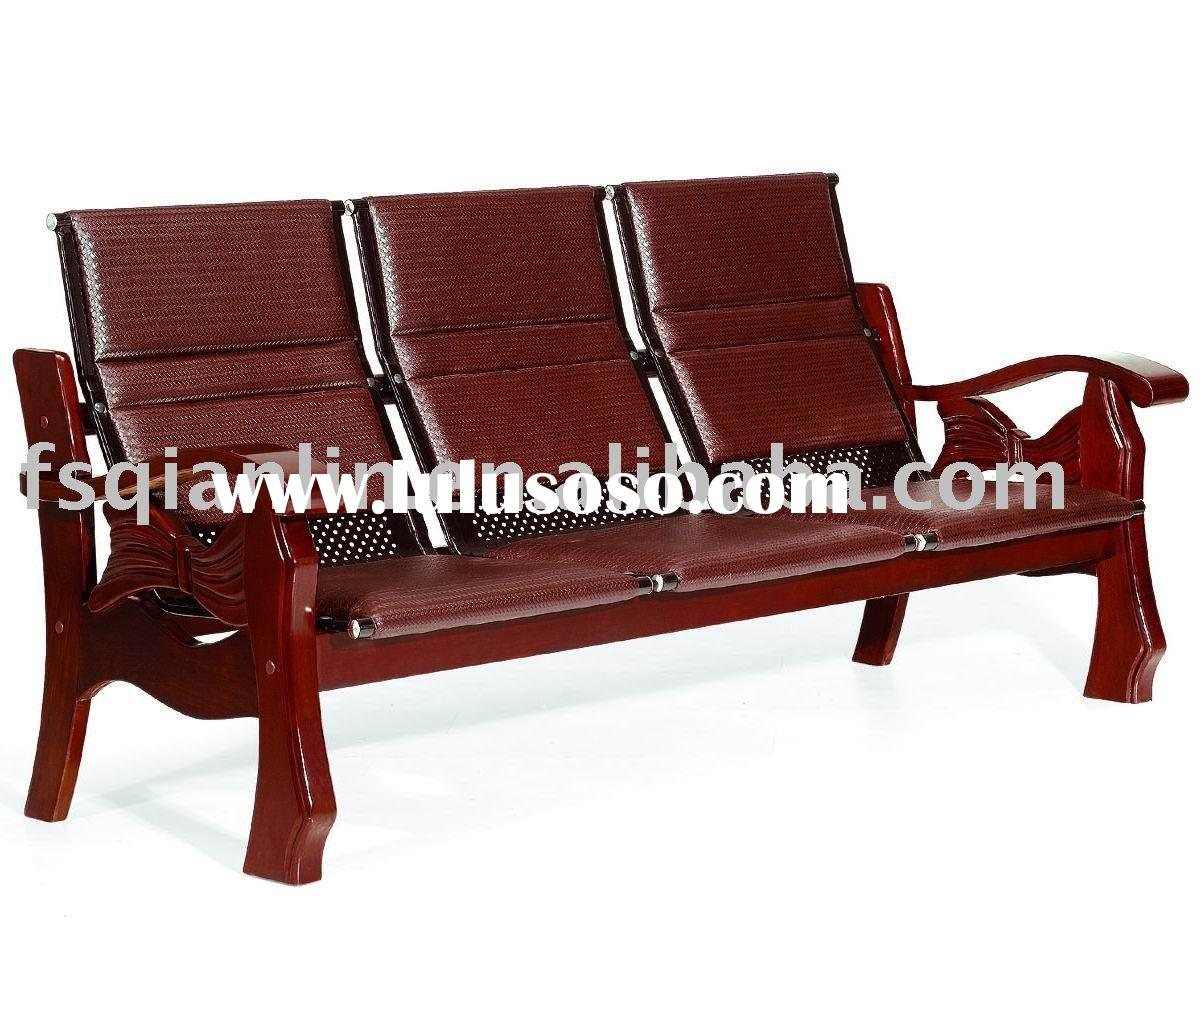 sofa fabric suppliers in mumbai china covers frame wood manufacturers lulusoso